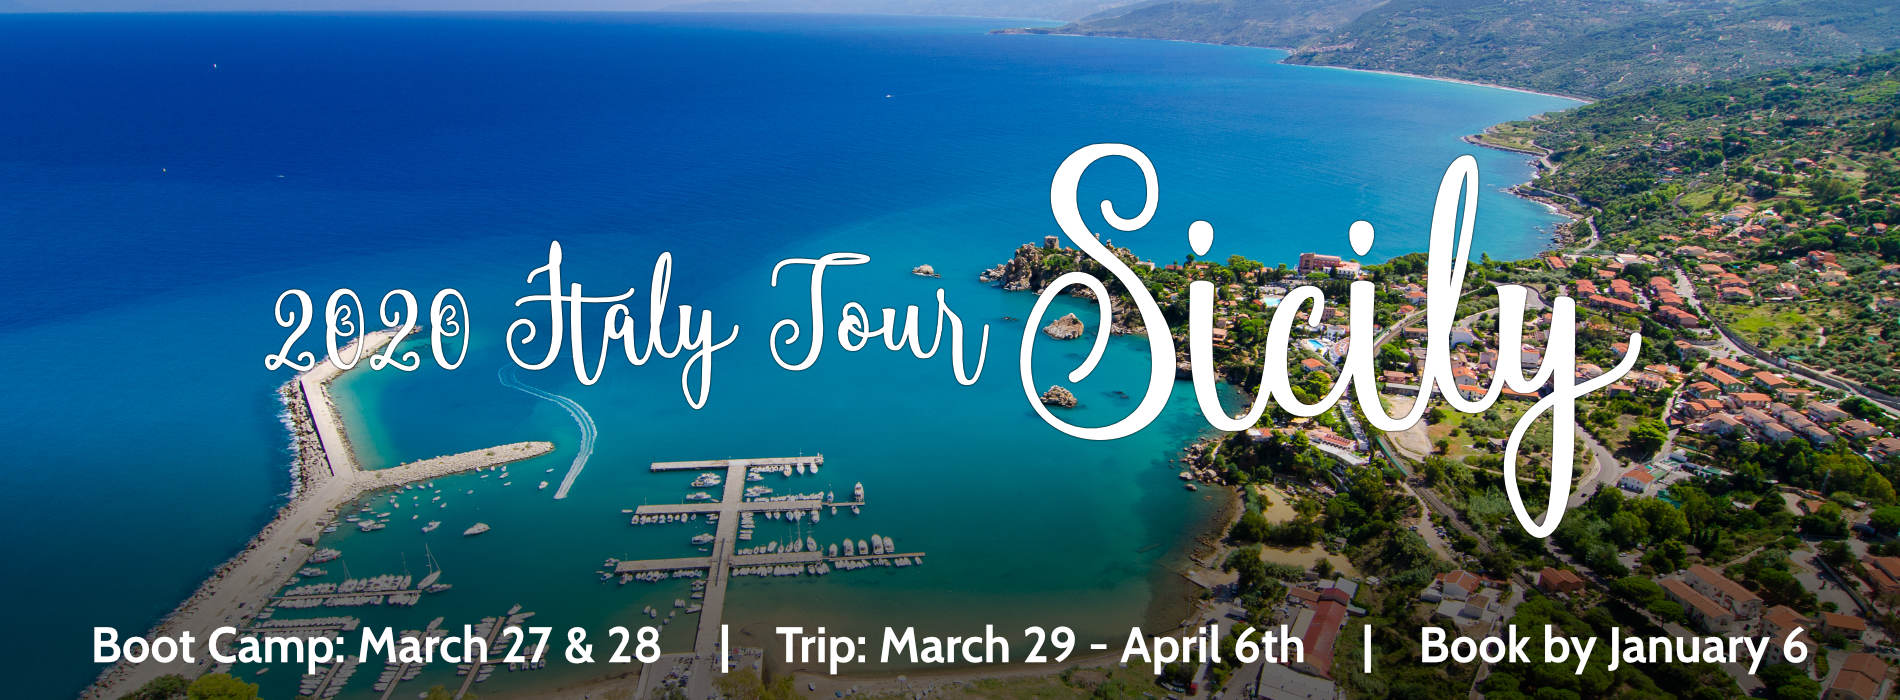 Tour of Sicily with The Inn at Stone Mill